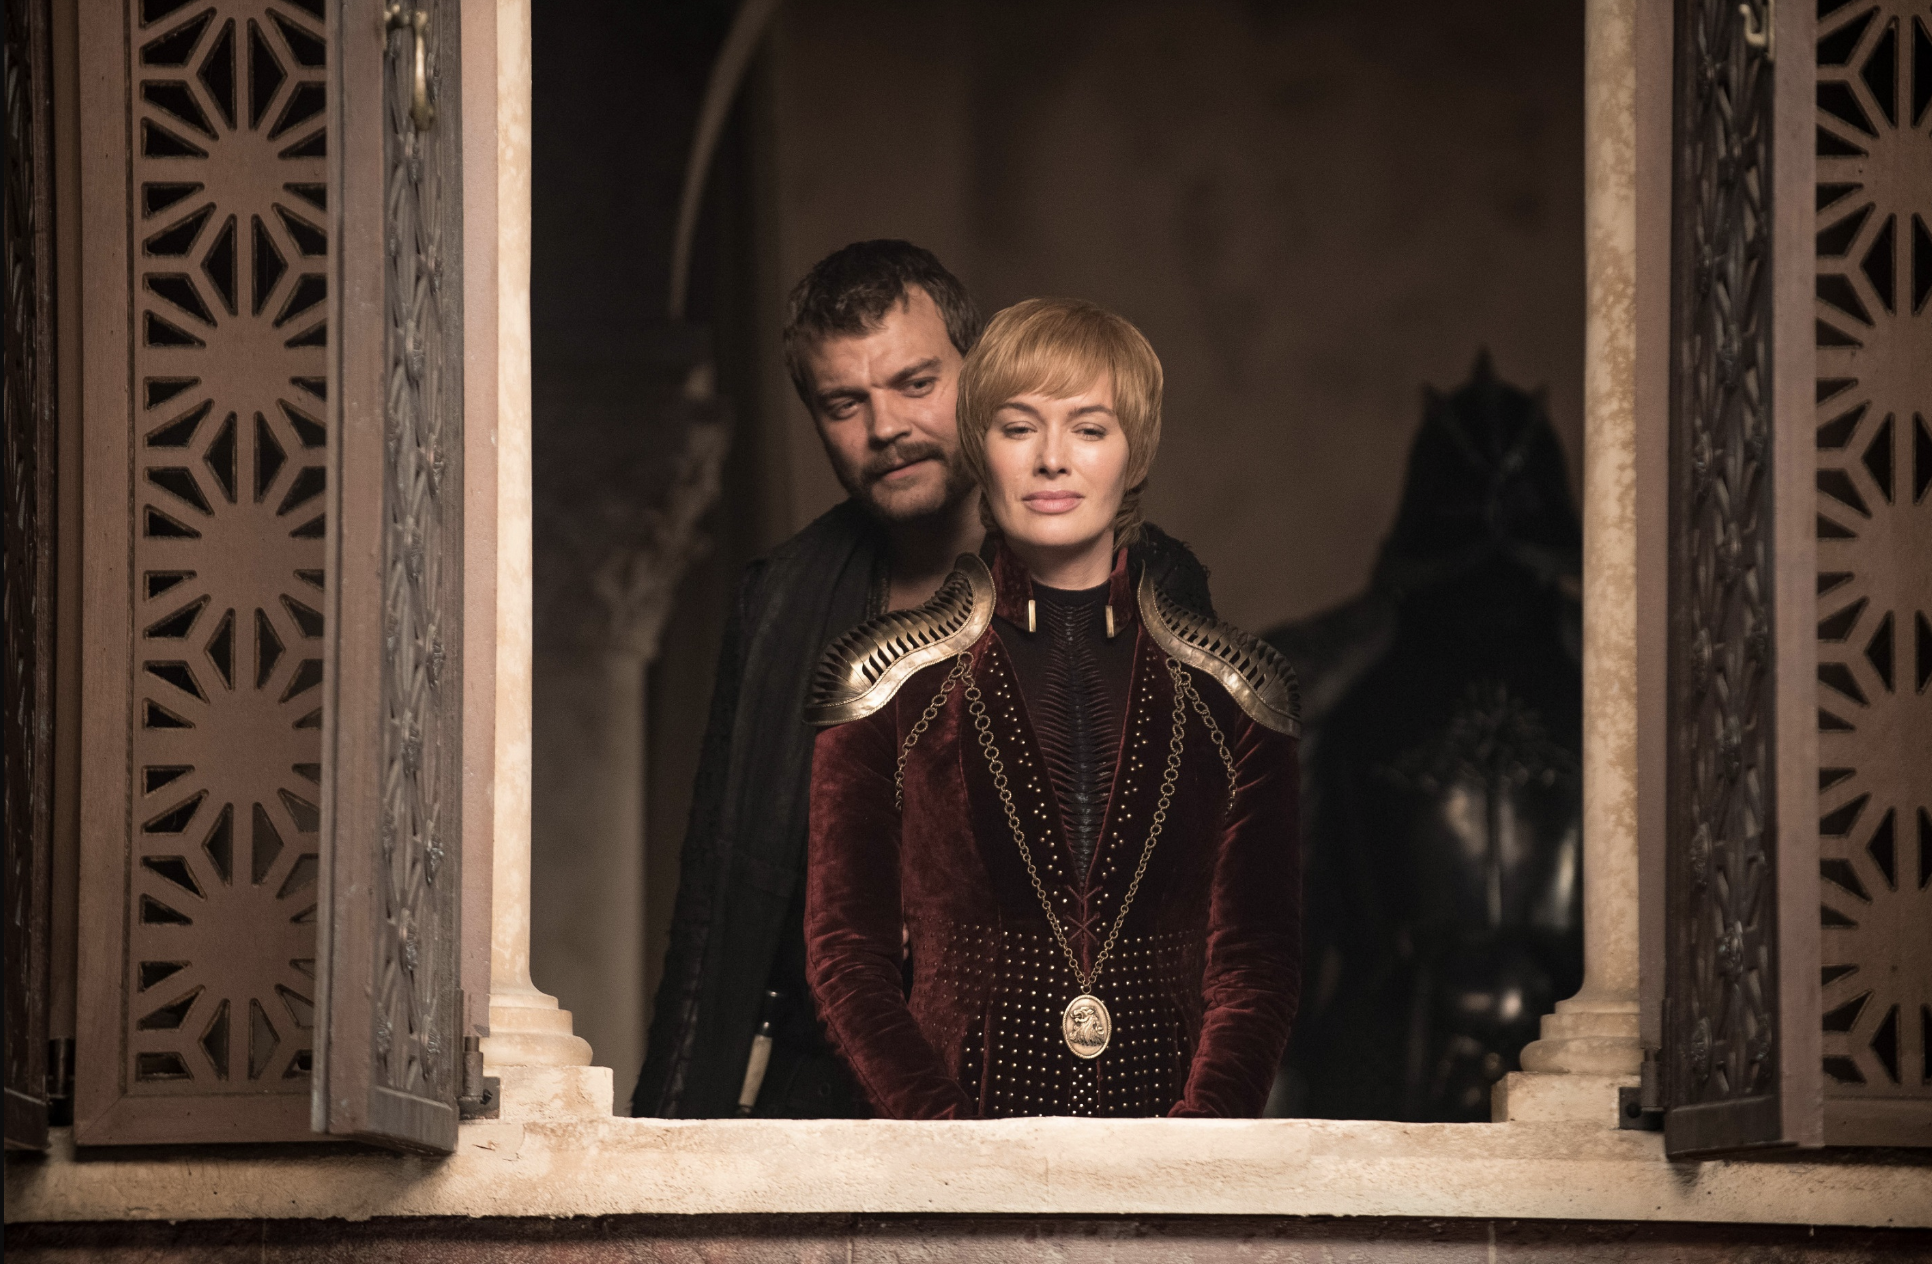 Who's going to kill Cersei on Game of Thrones? Here are the most likely candidates to be the 'valonqar'